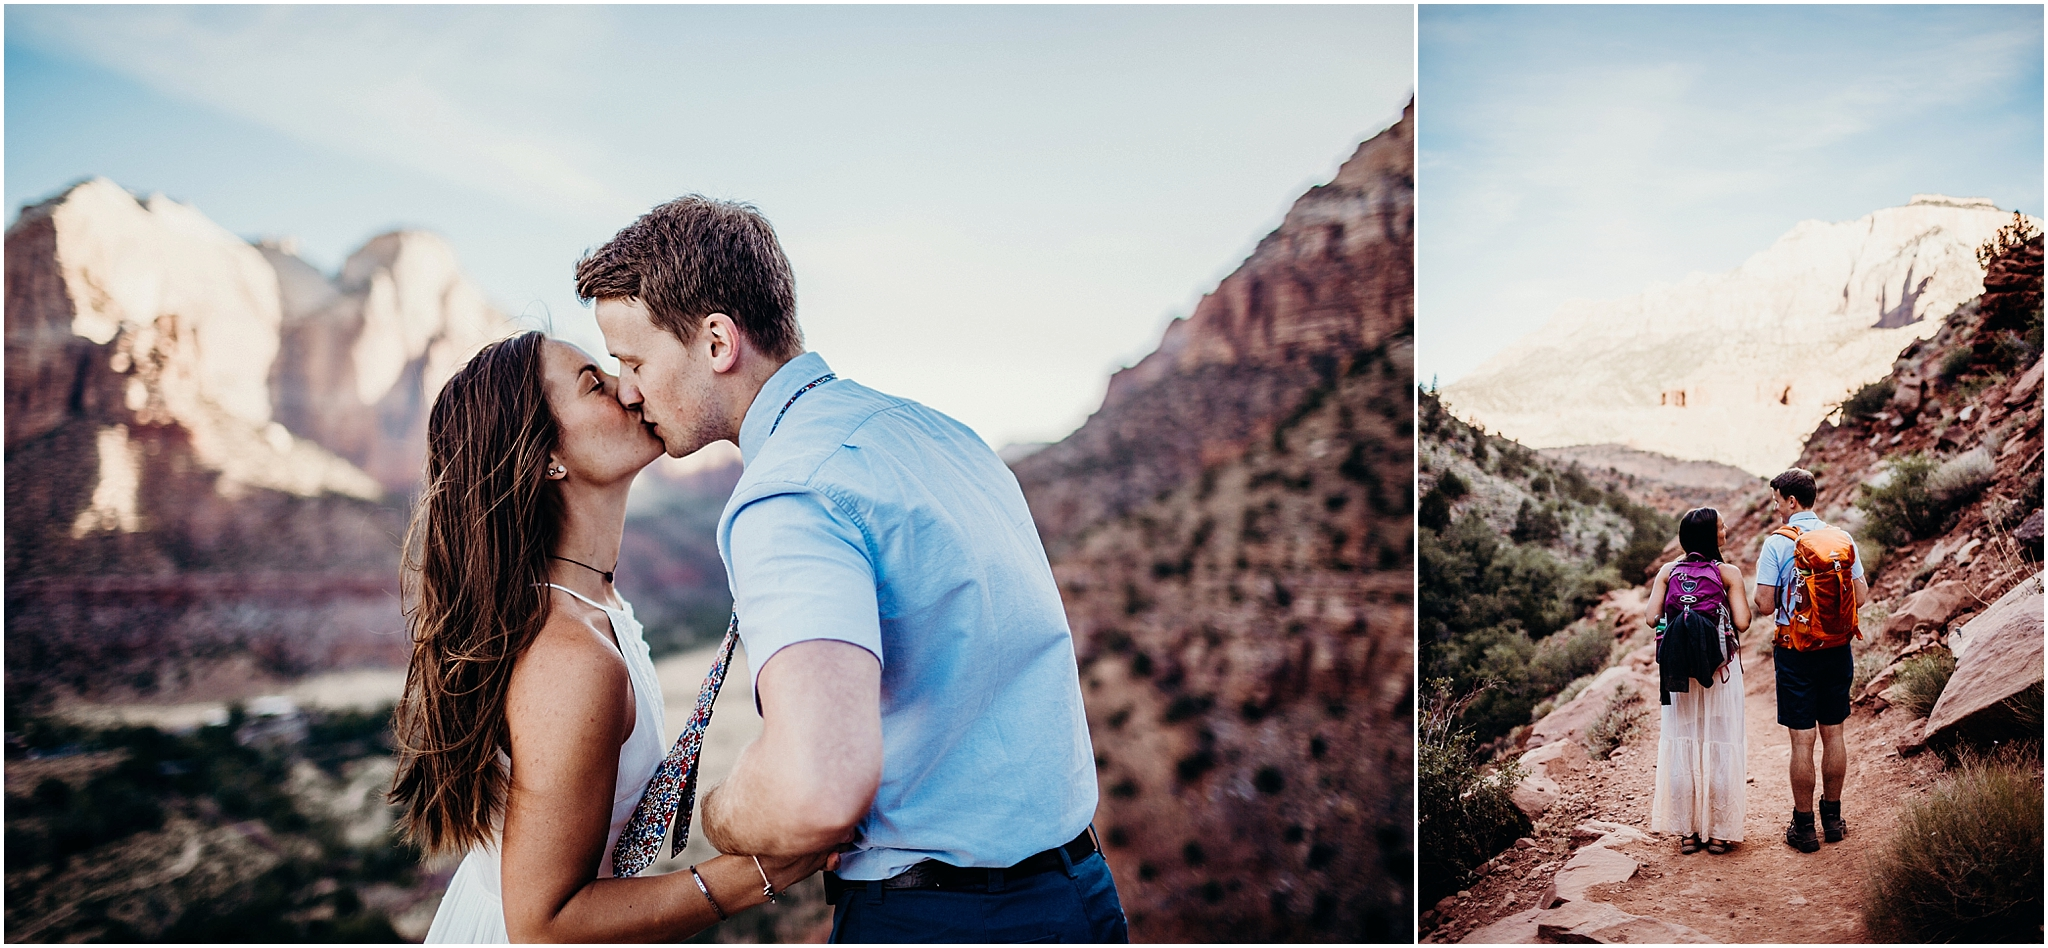 zion national park adventure engagement session zion portraits utah photographer arizona photographer 8.jpg